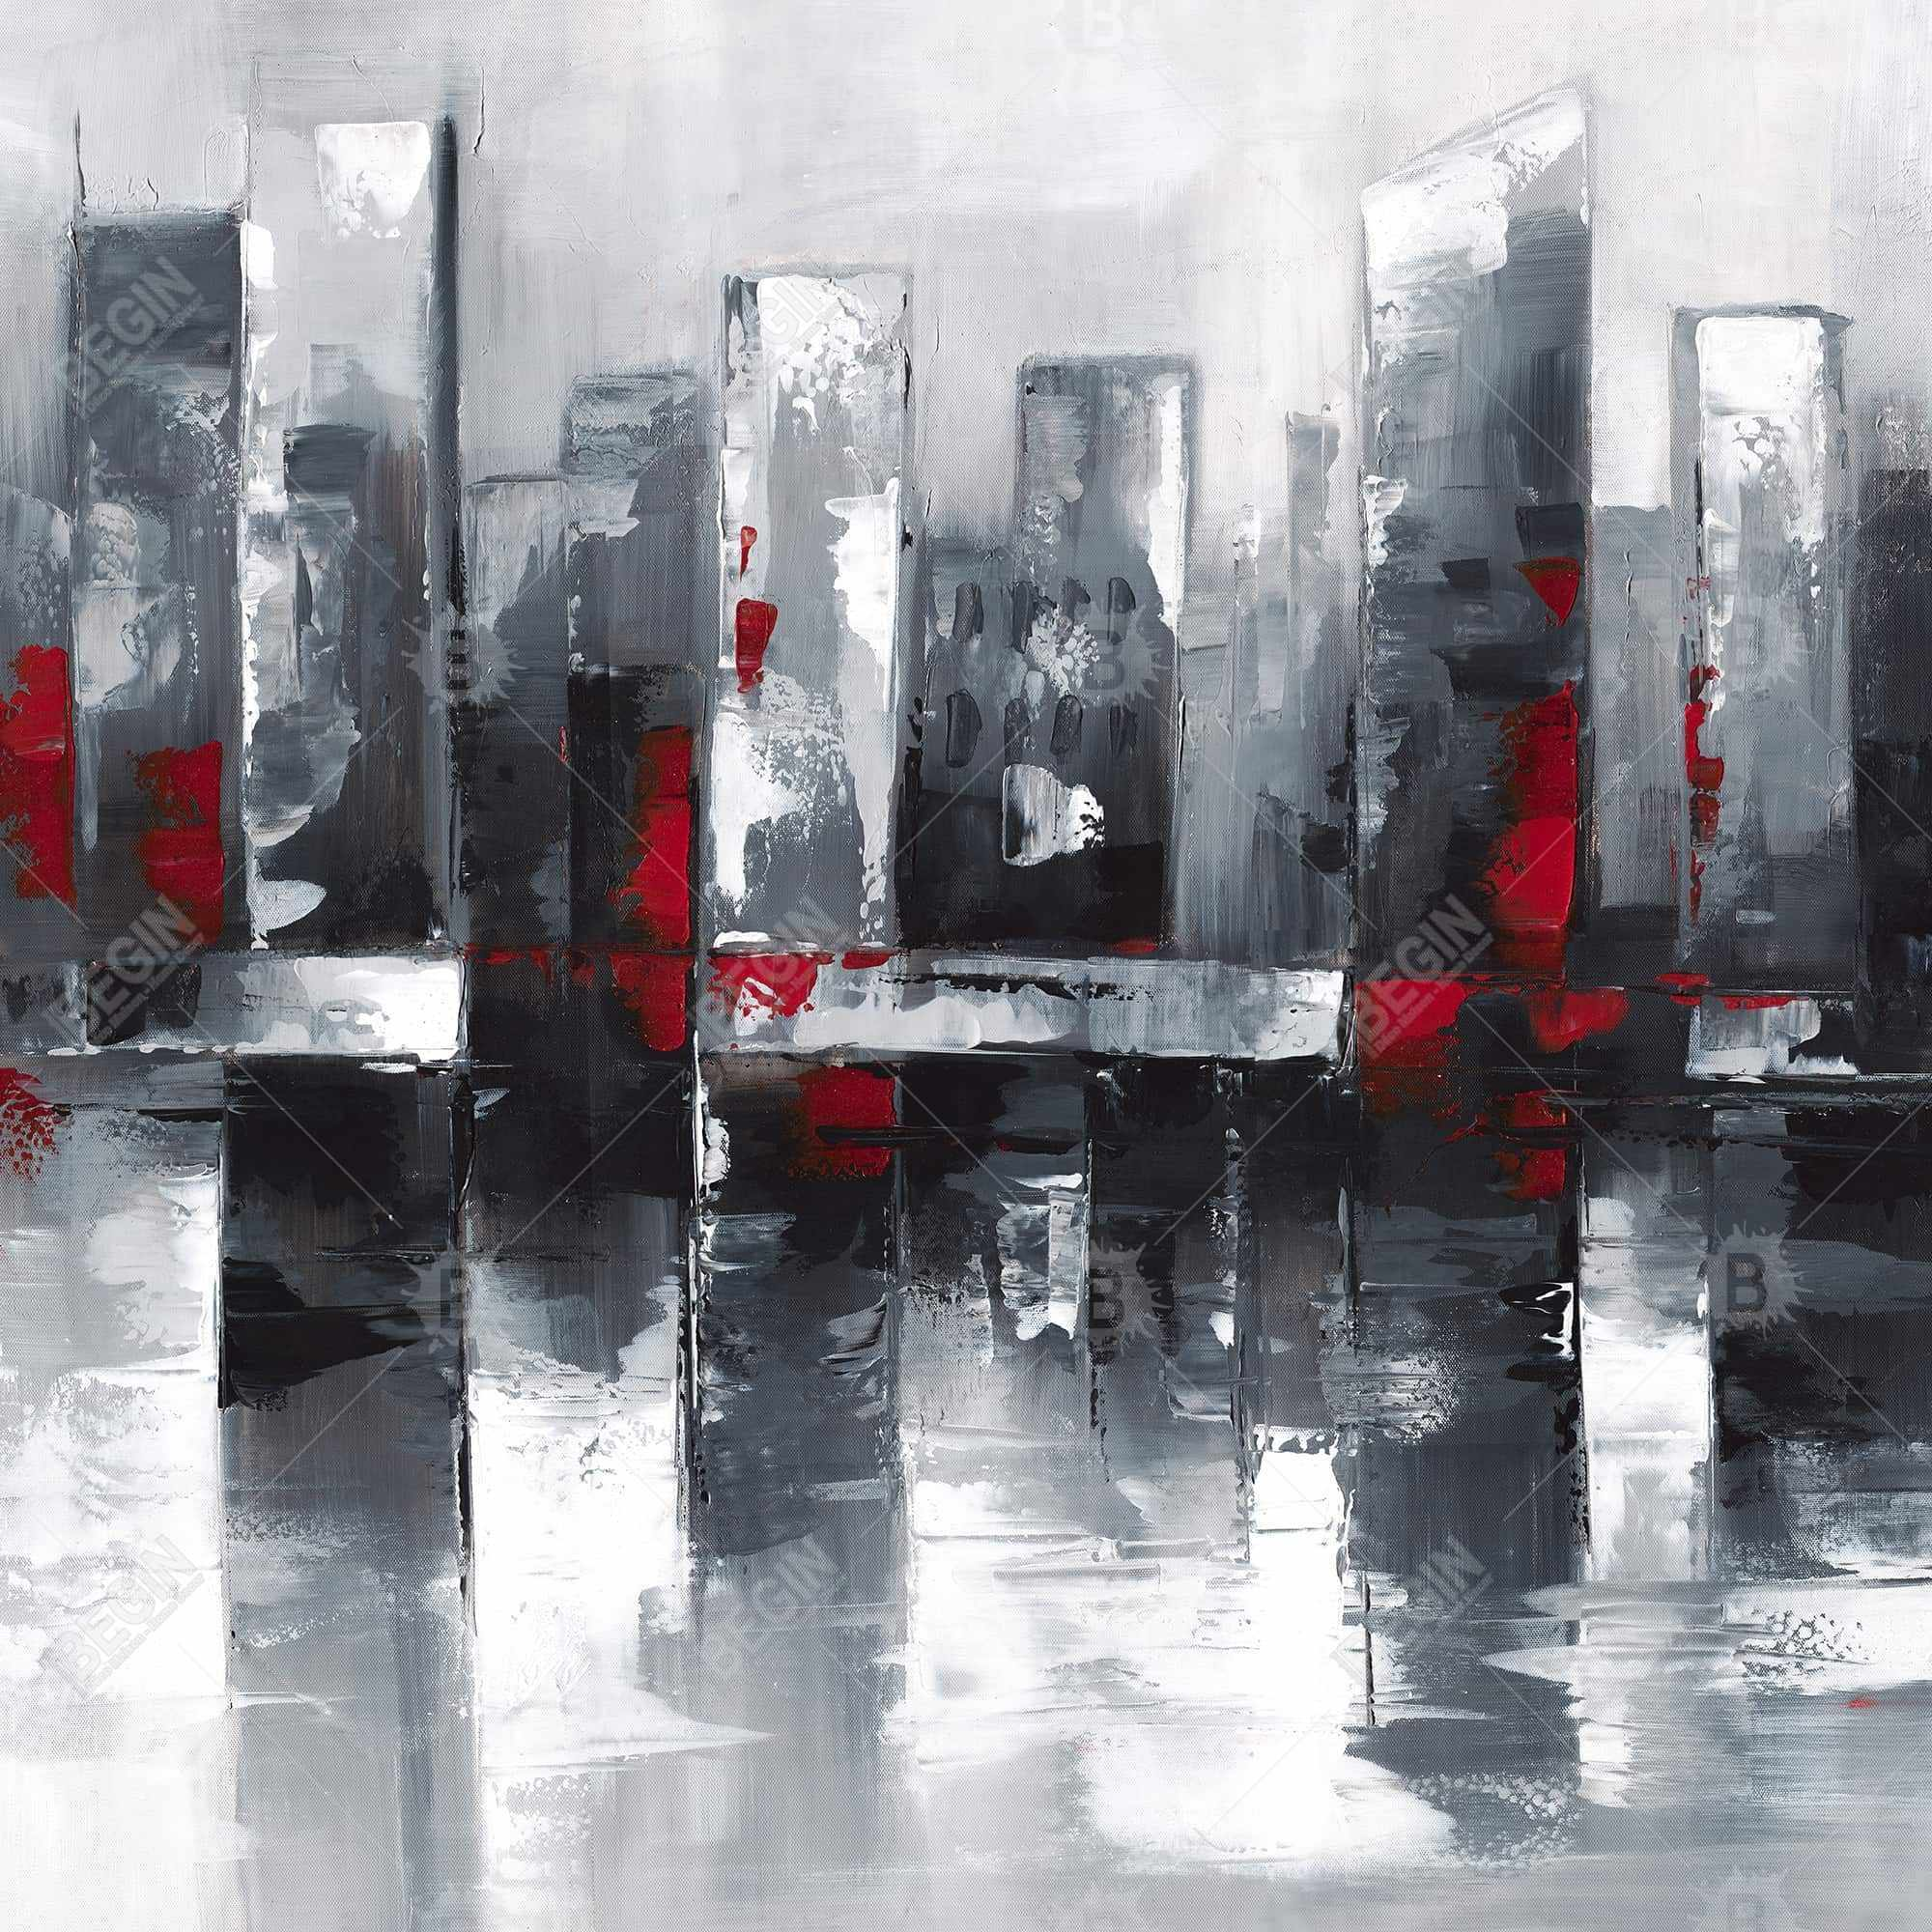 Abstract cityscape with reflection on water